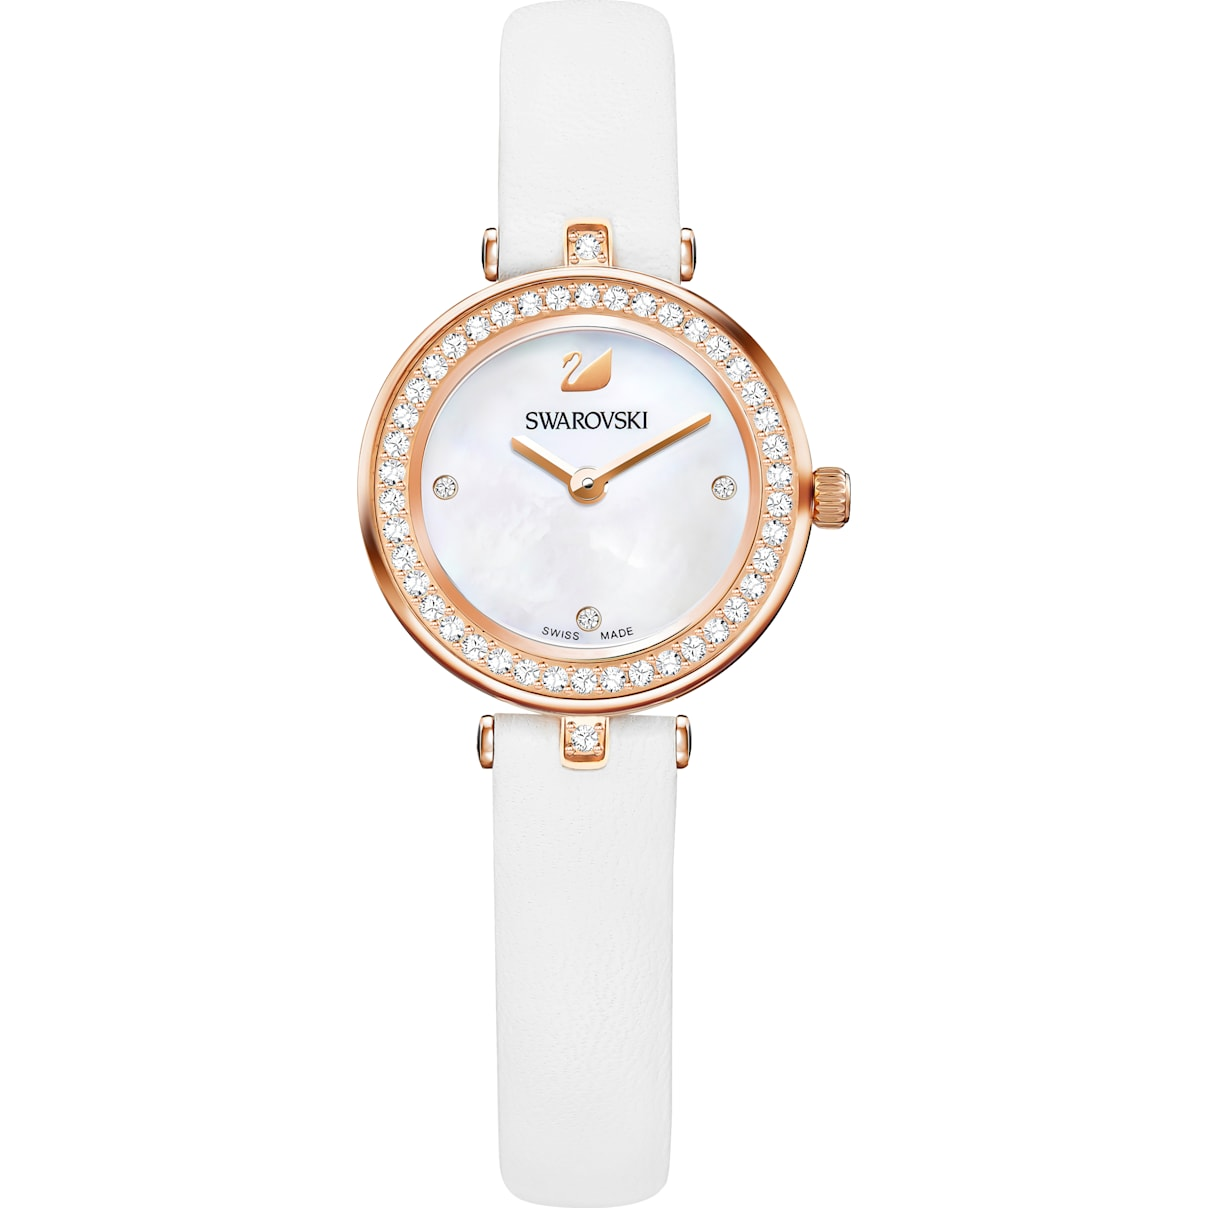 Swarovski Aila Dressy Mini Watch, Leather strap, White, Rose-gold tone PVD